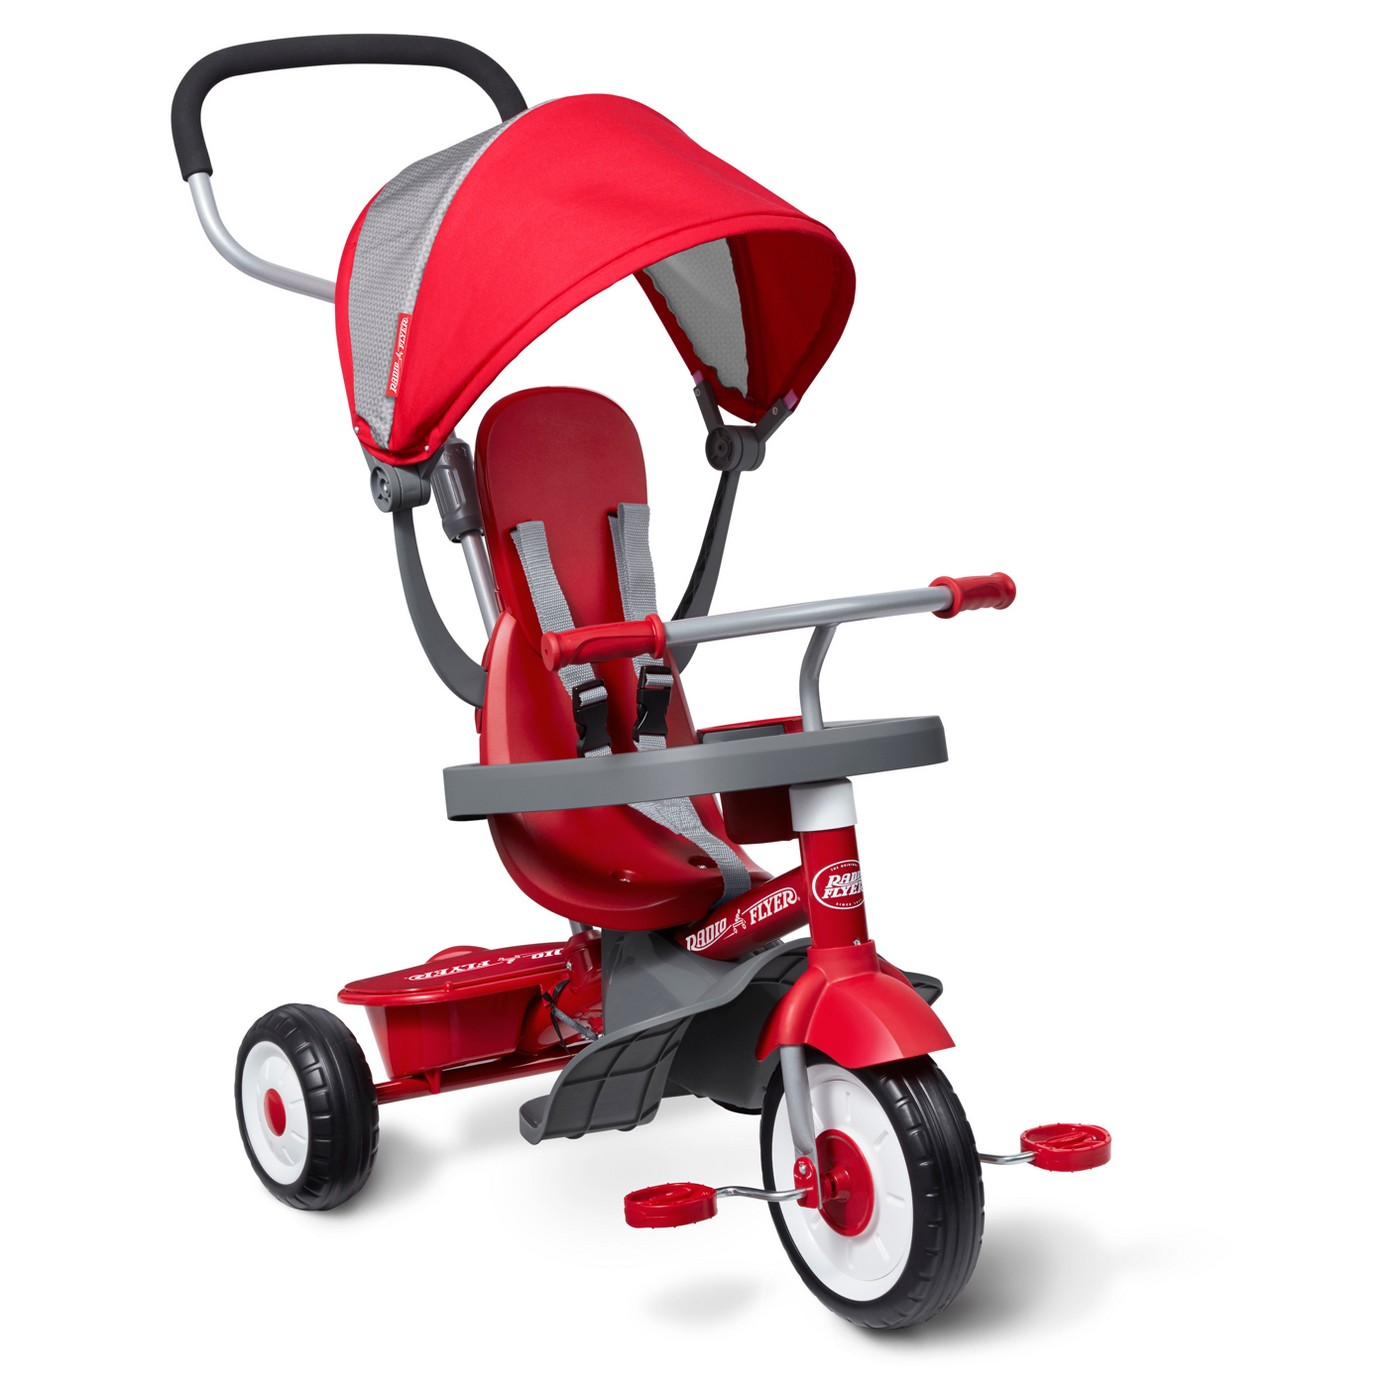 Radio Flyer 4-in-1 Stroll 'N Trike - Red - image 1 of 29